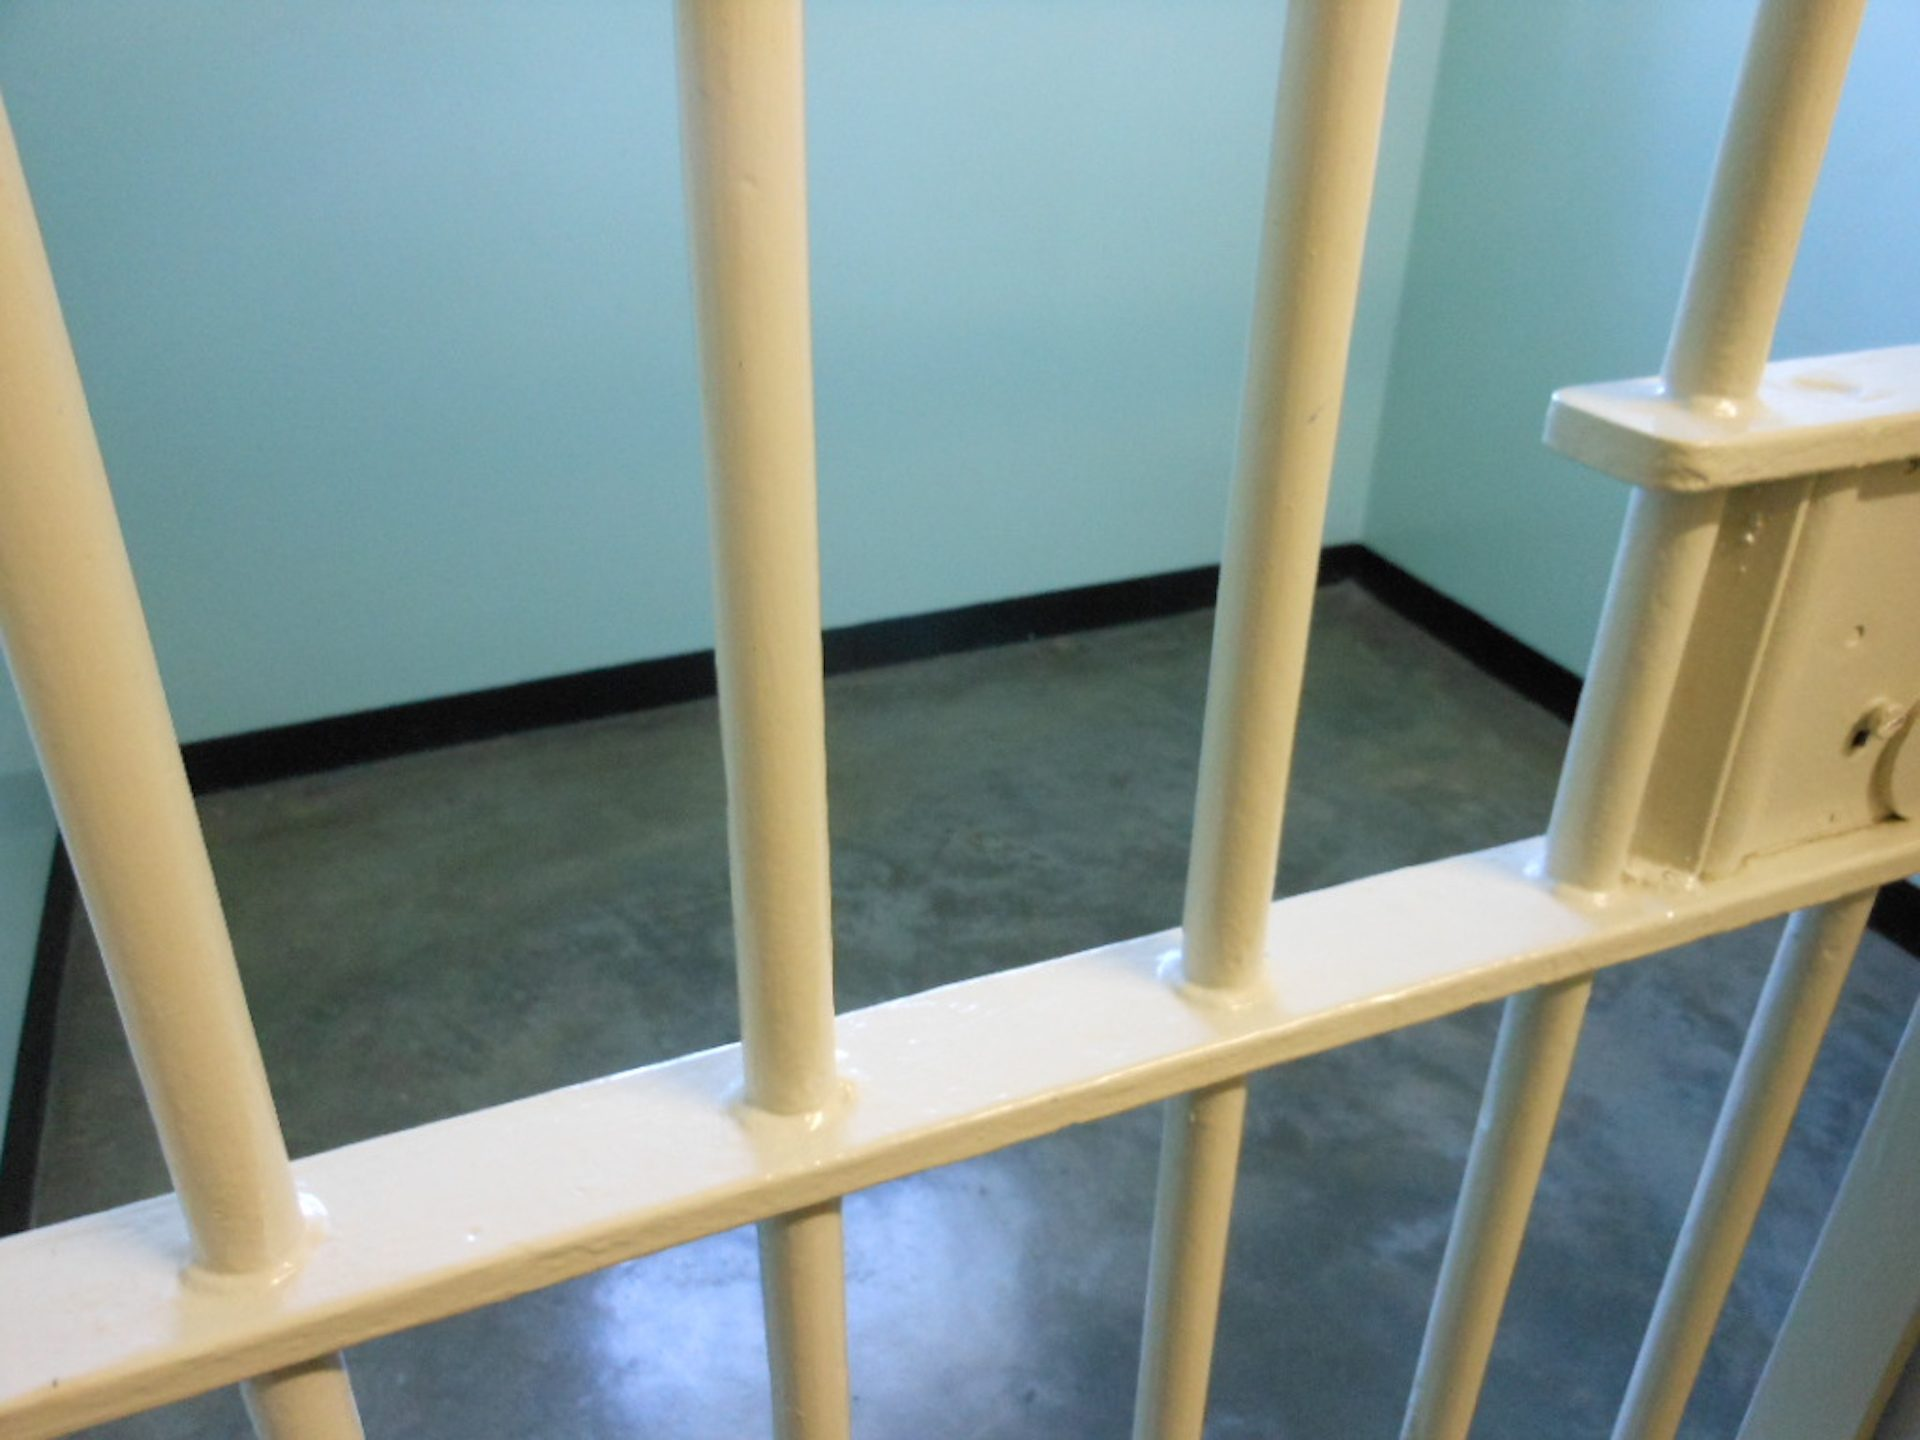 White barred jail cell